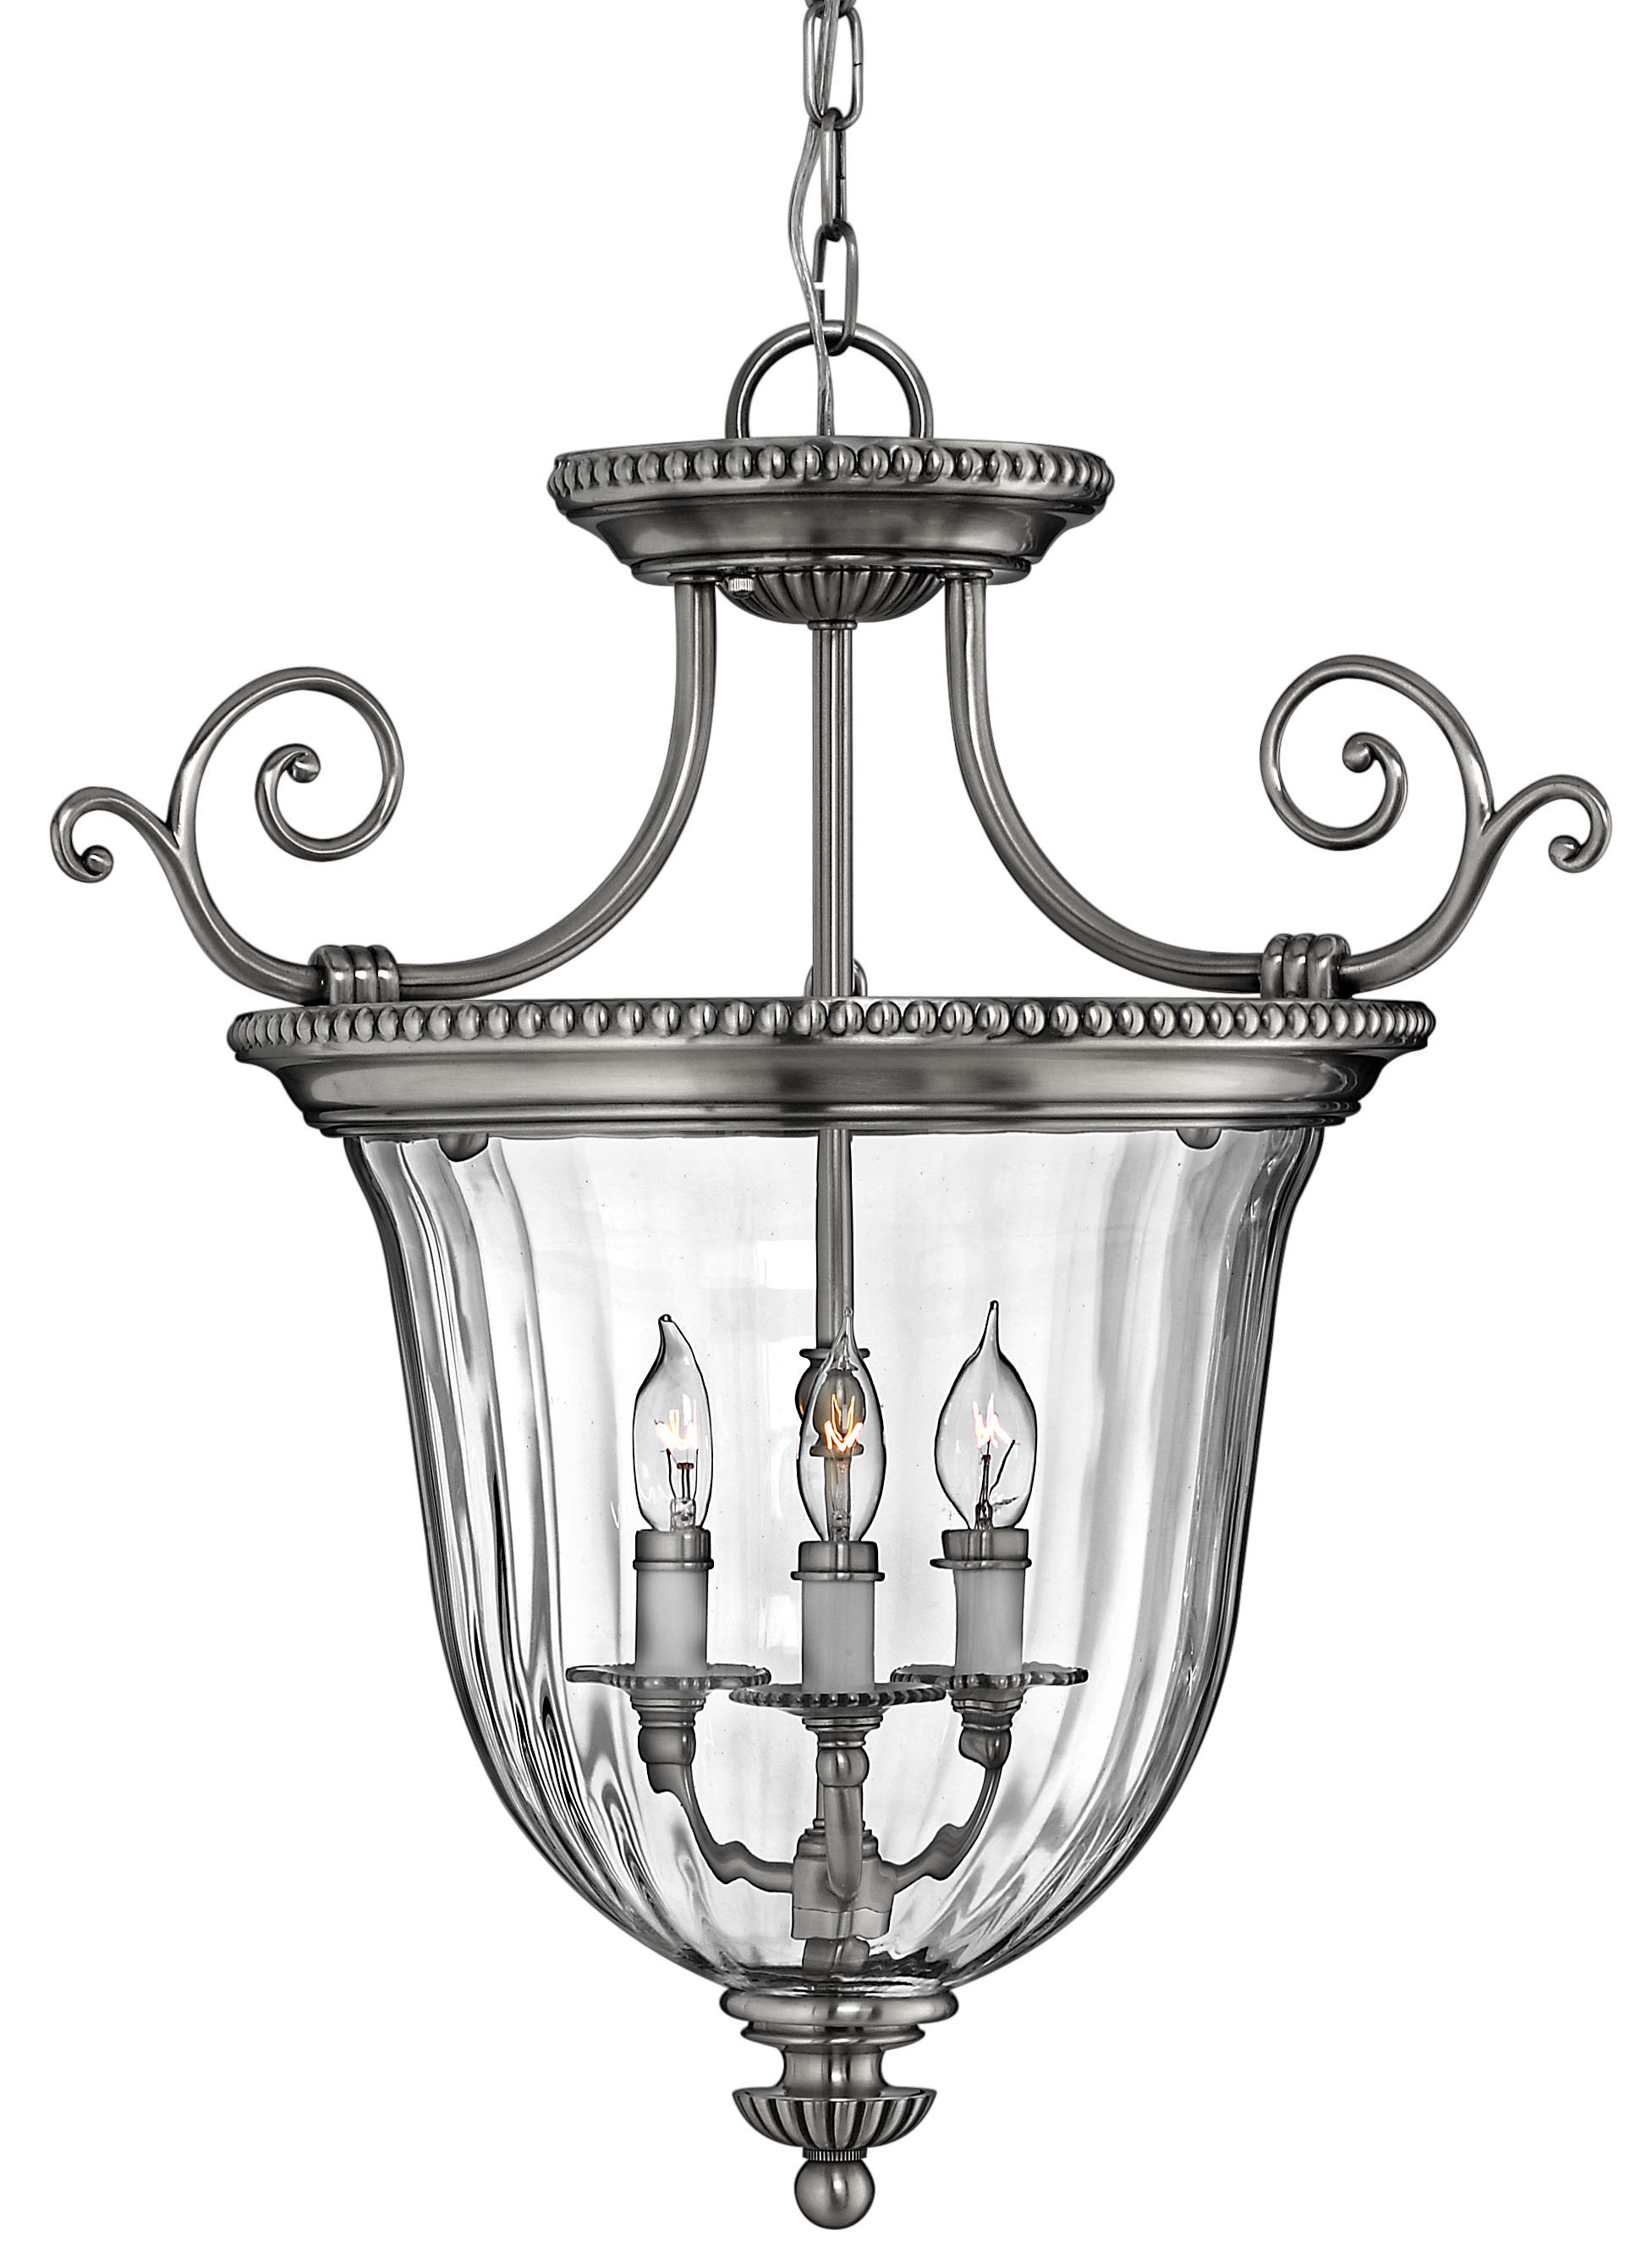 Oxford 3-Light Single Urn Pendant throughout 3-Light Single Urn Pendants (Image 23 of 30)